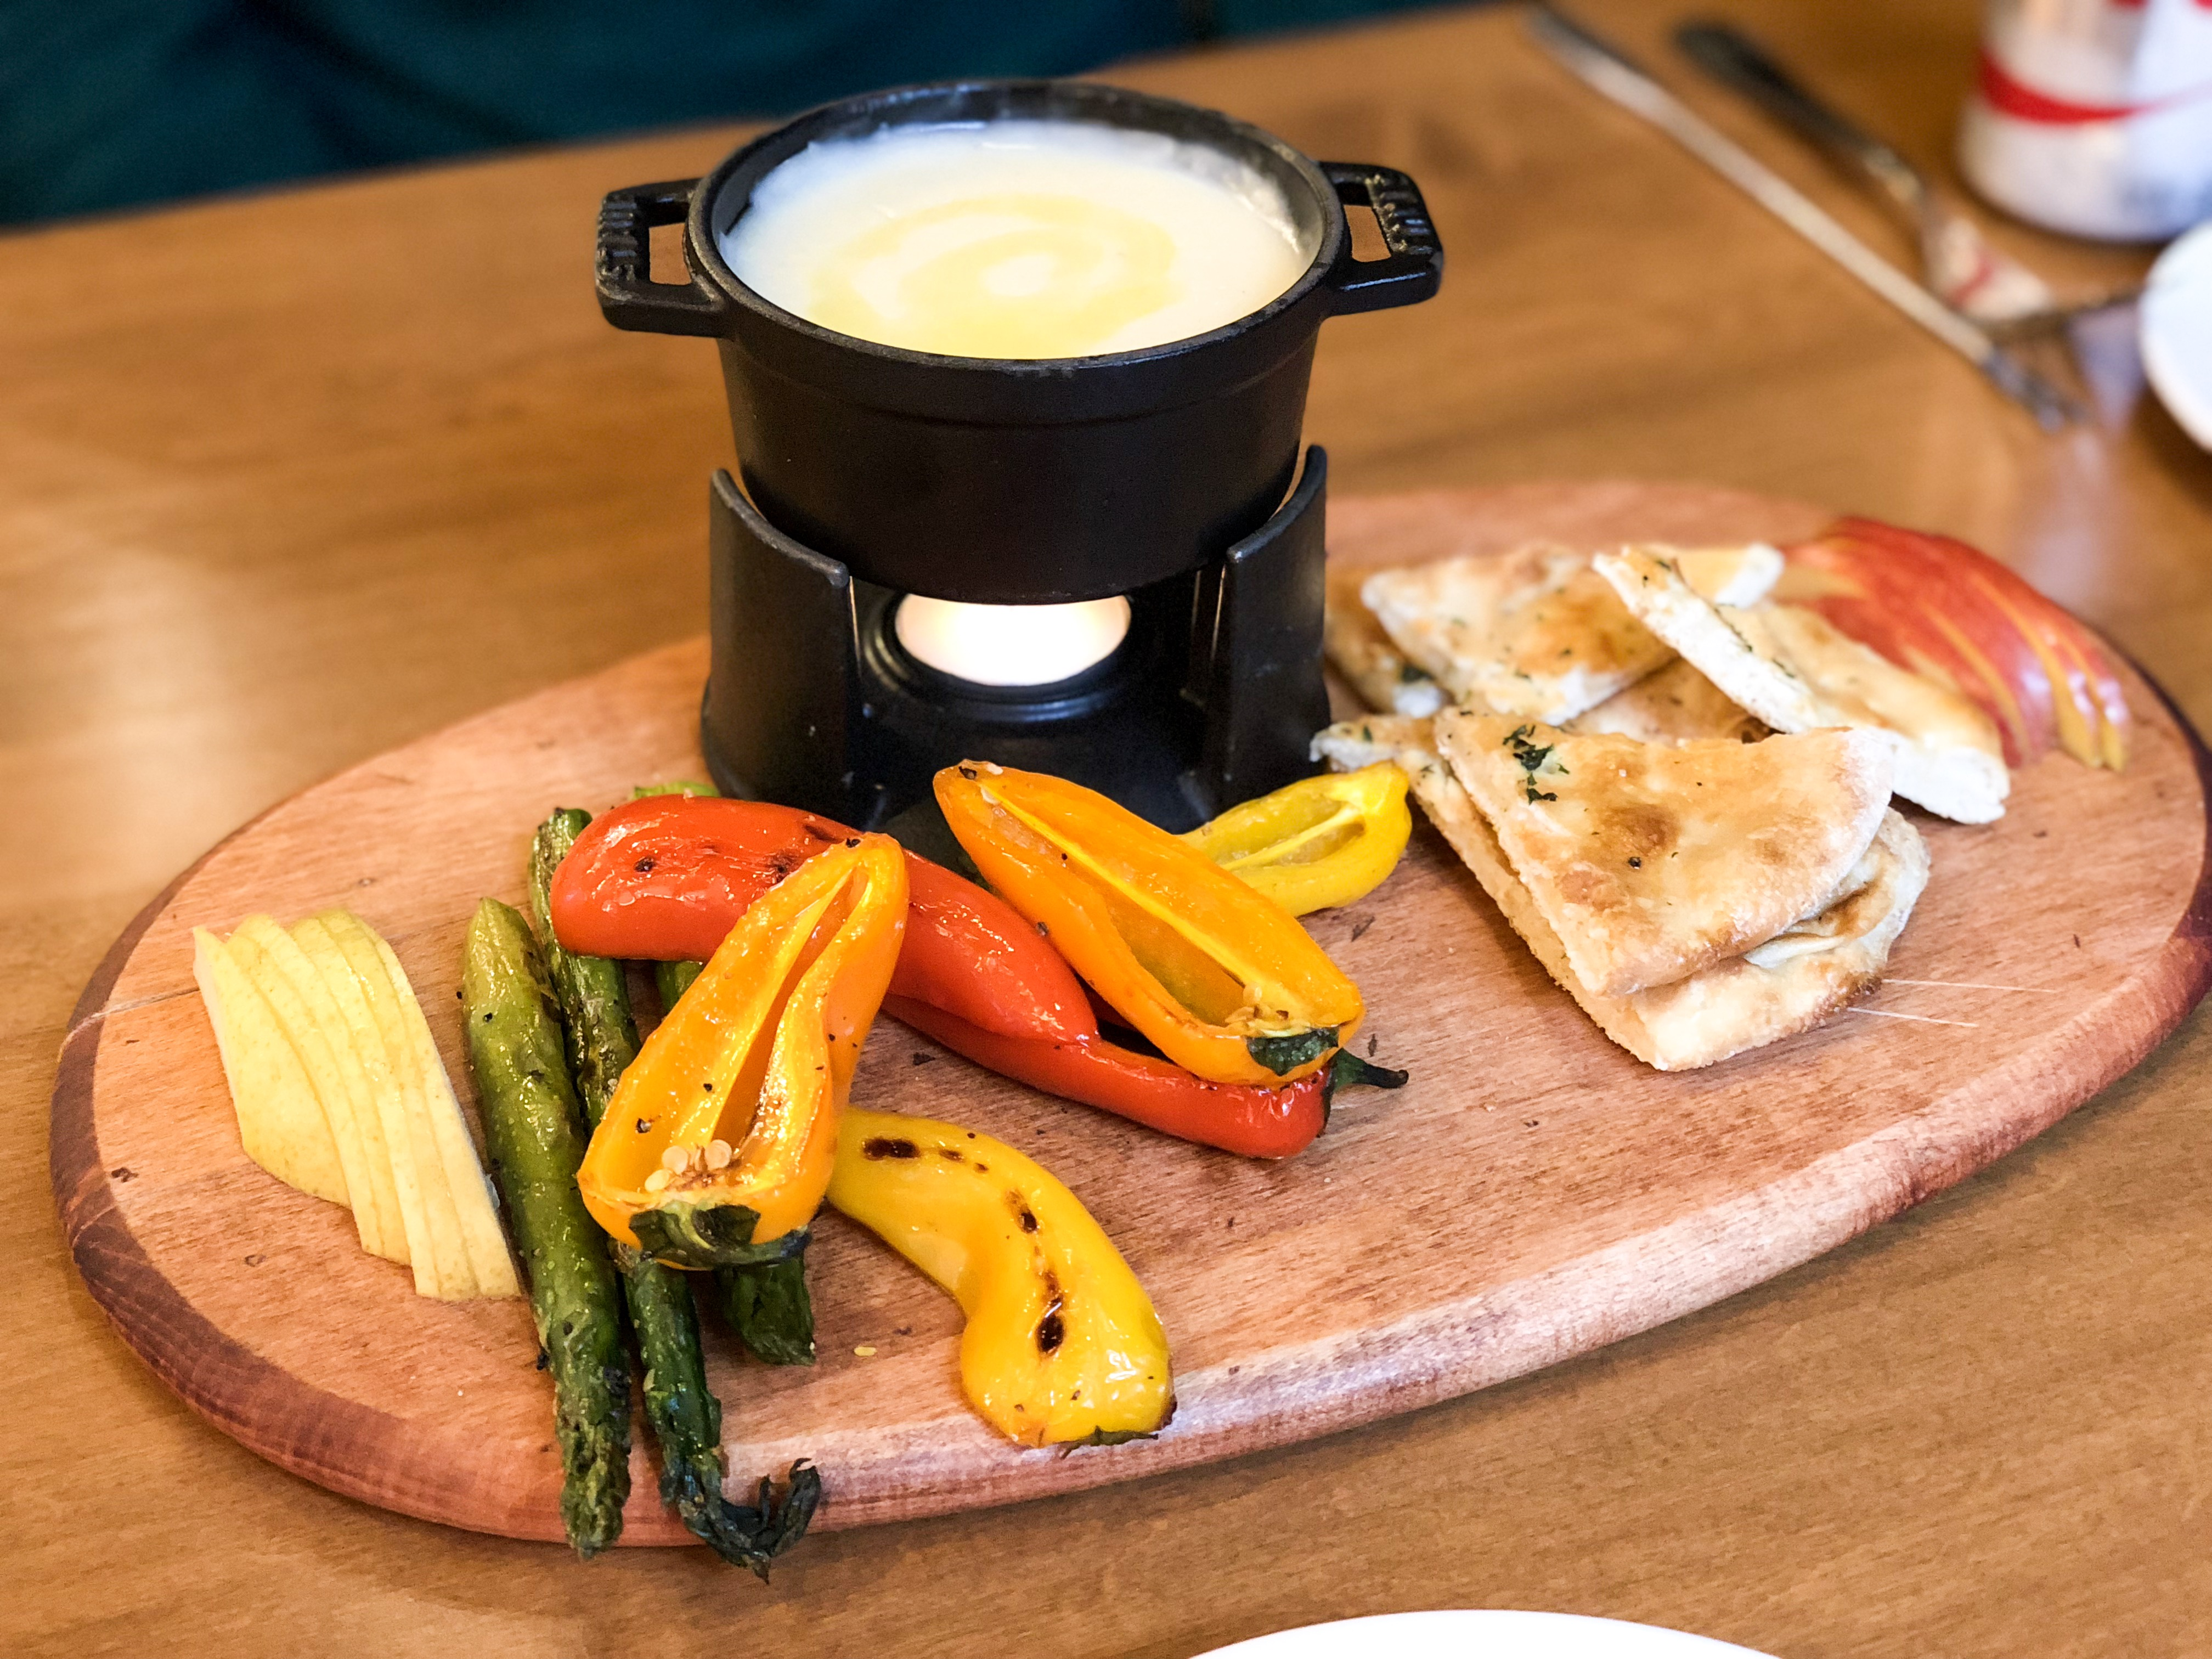 A plate of vegetables and bread with a black fondue pot sitting on a wooden tray